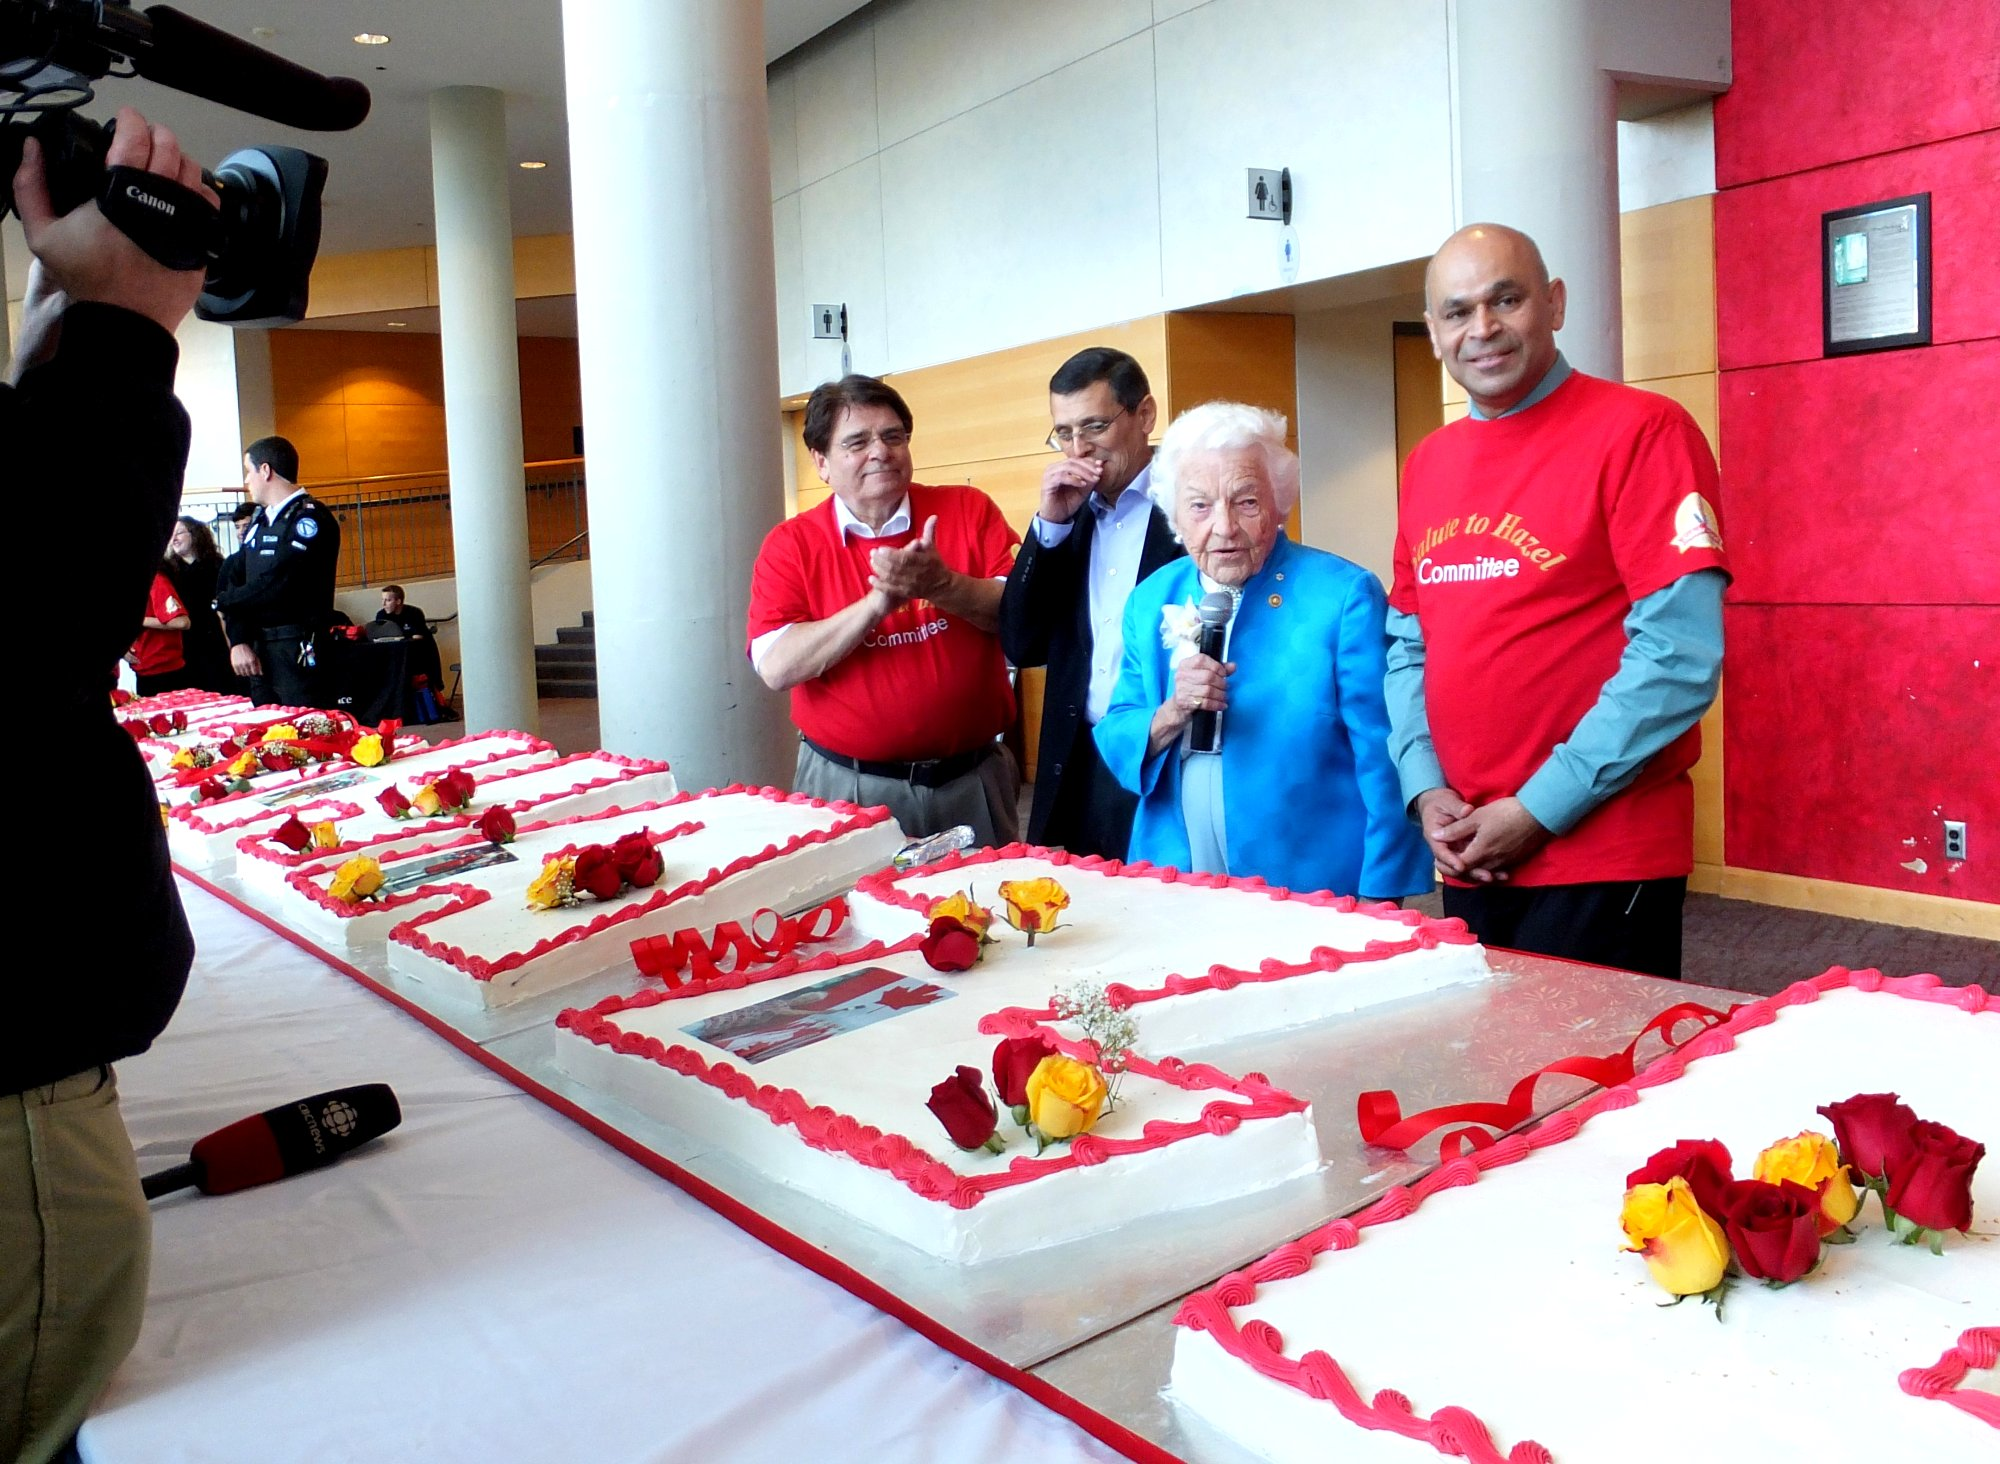 Ron Lenyk, Mayor Hazel McCallion, Jake Dheer at Salute to Hazel, Living Arts Centre,19 Oct 2014. Photo by I Lee.